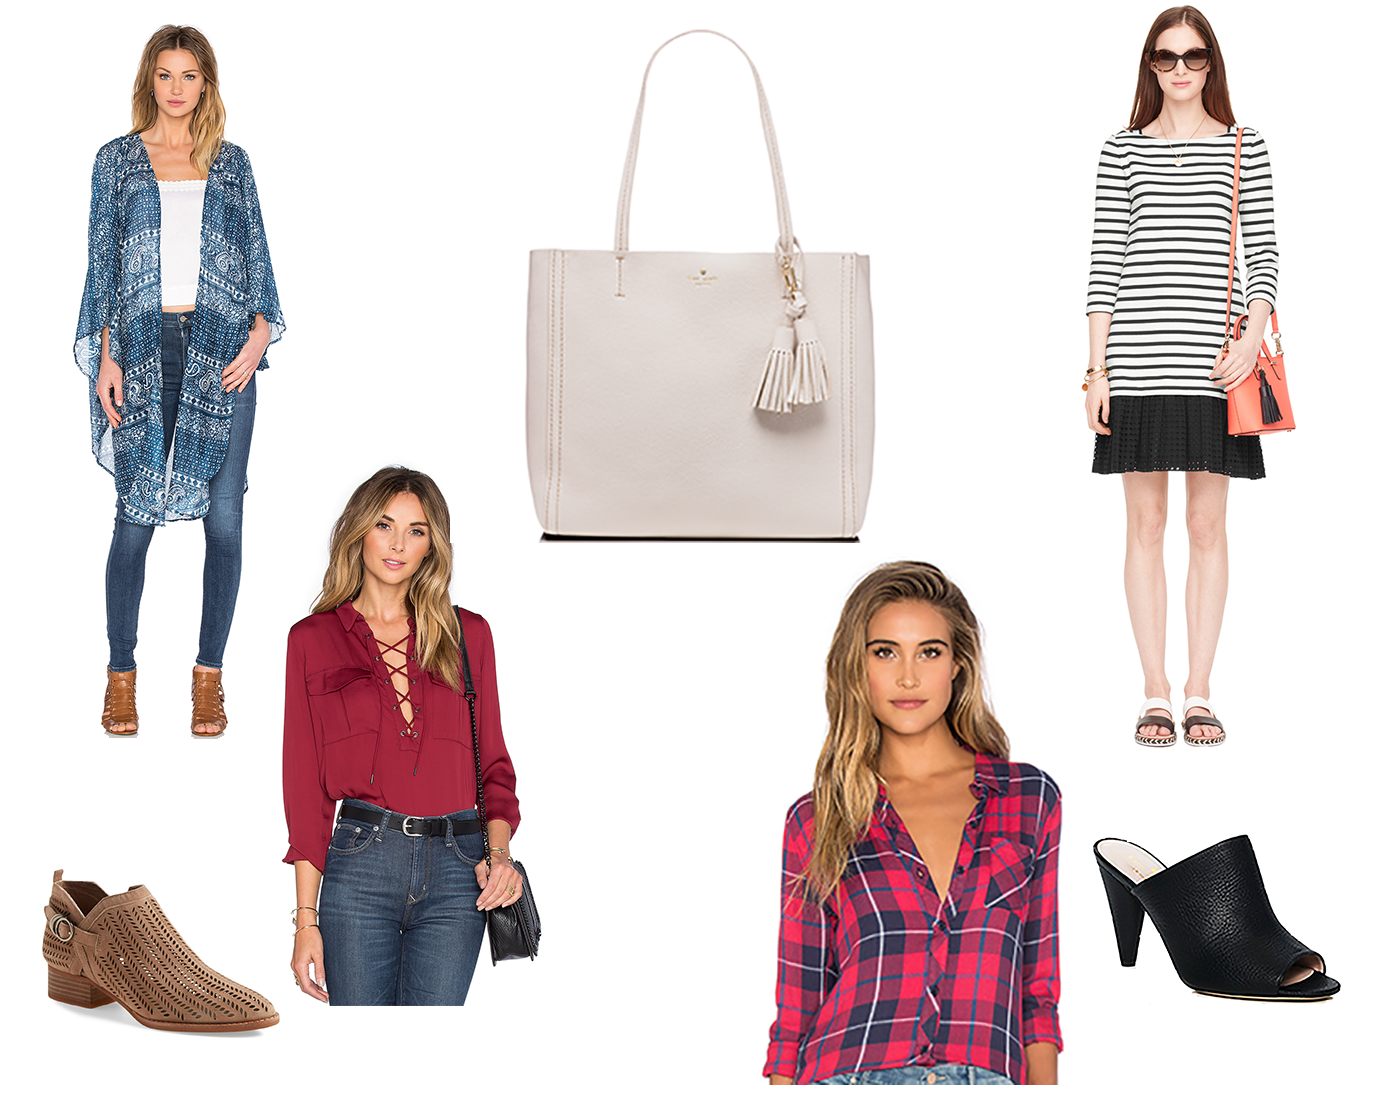 Summer Sale Items You Don't Want To Miss!